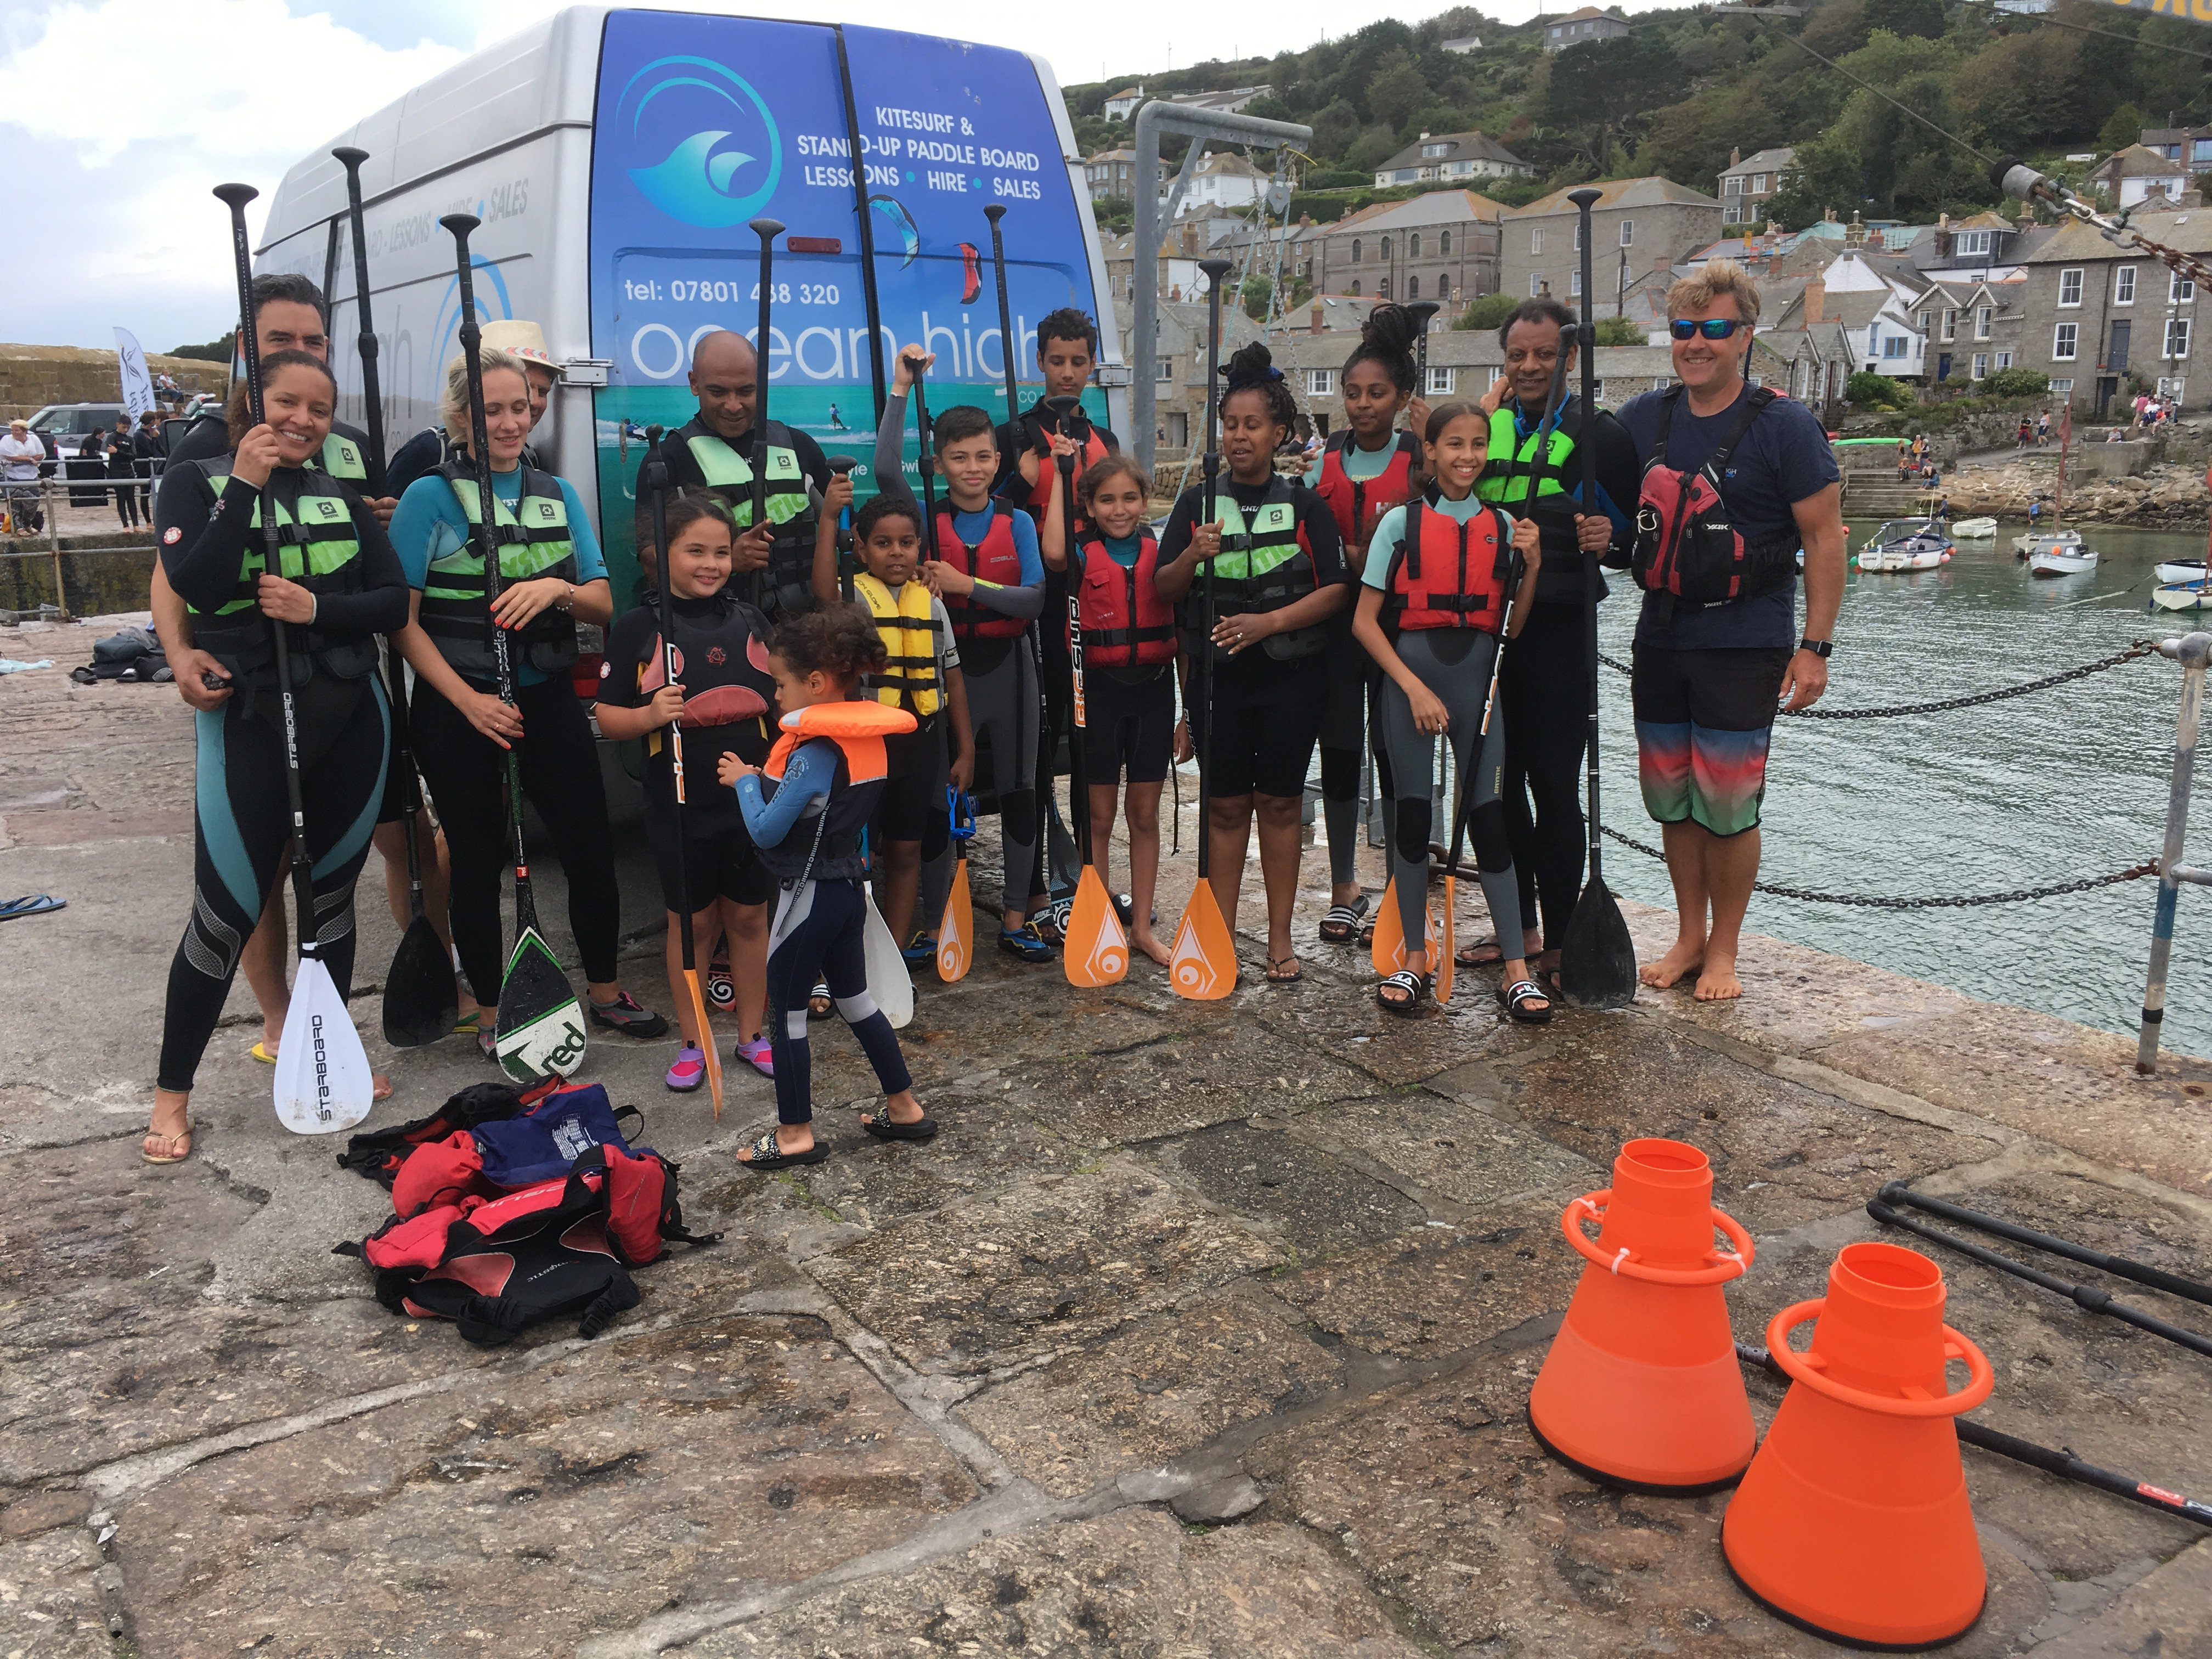 Grenfell guests before paddleboarding - photo Cornwall Hugs Grenfell.JPG